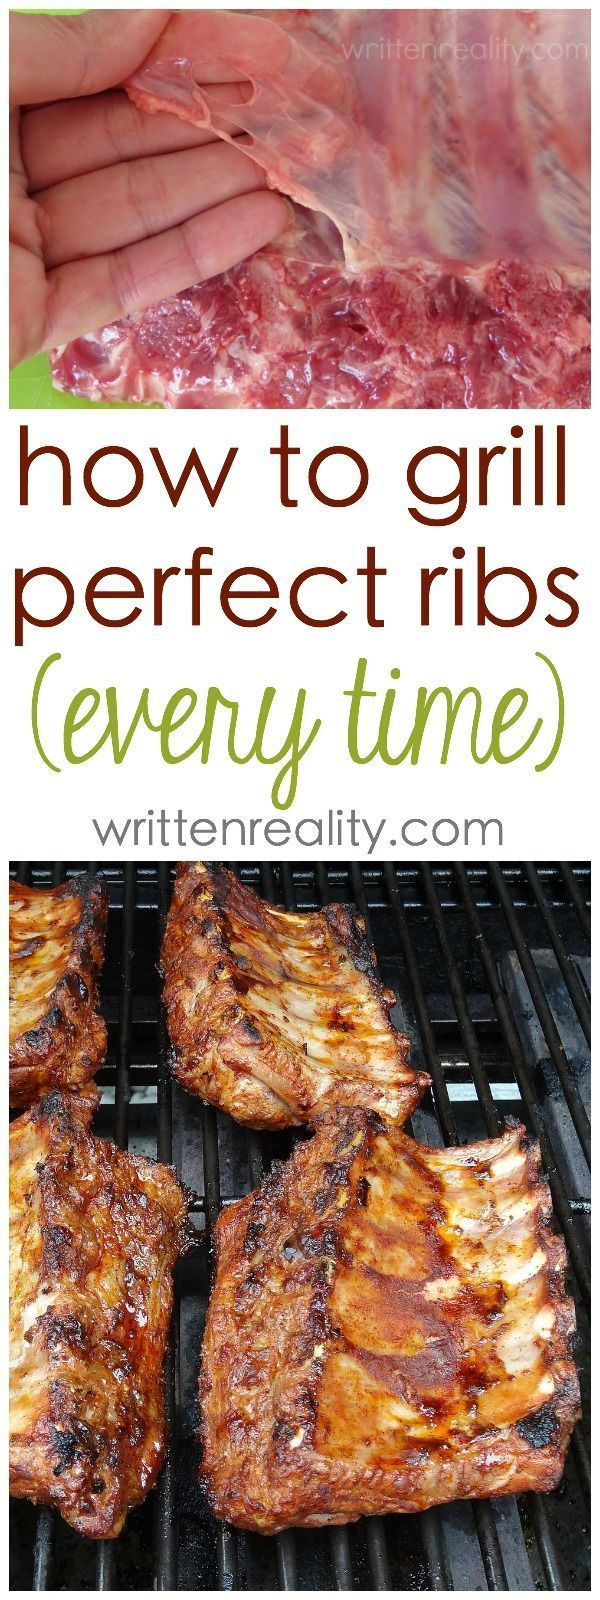 How to Cook Ribs on the Grill: The secret to cooking BBQ ribs on the grill is not about the sauce. Check out these Best BBQ Ribs Ever! Seriously. They are the best barbecue ribs on the grill you've ever tasted.